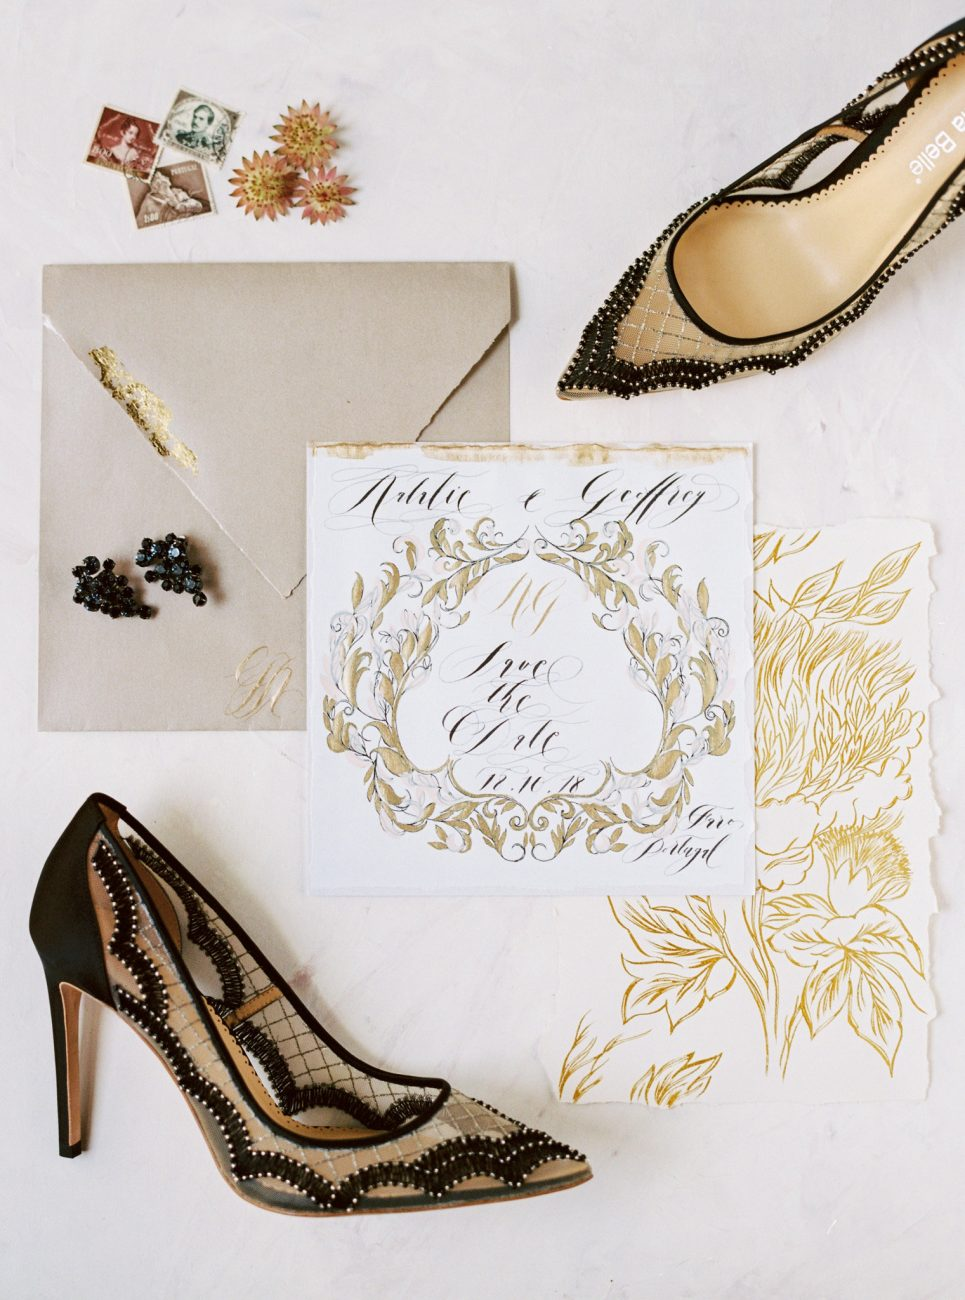 Hand PAinted wedding invitation with gold artwork piece